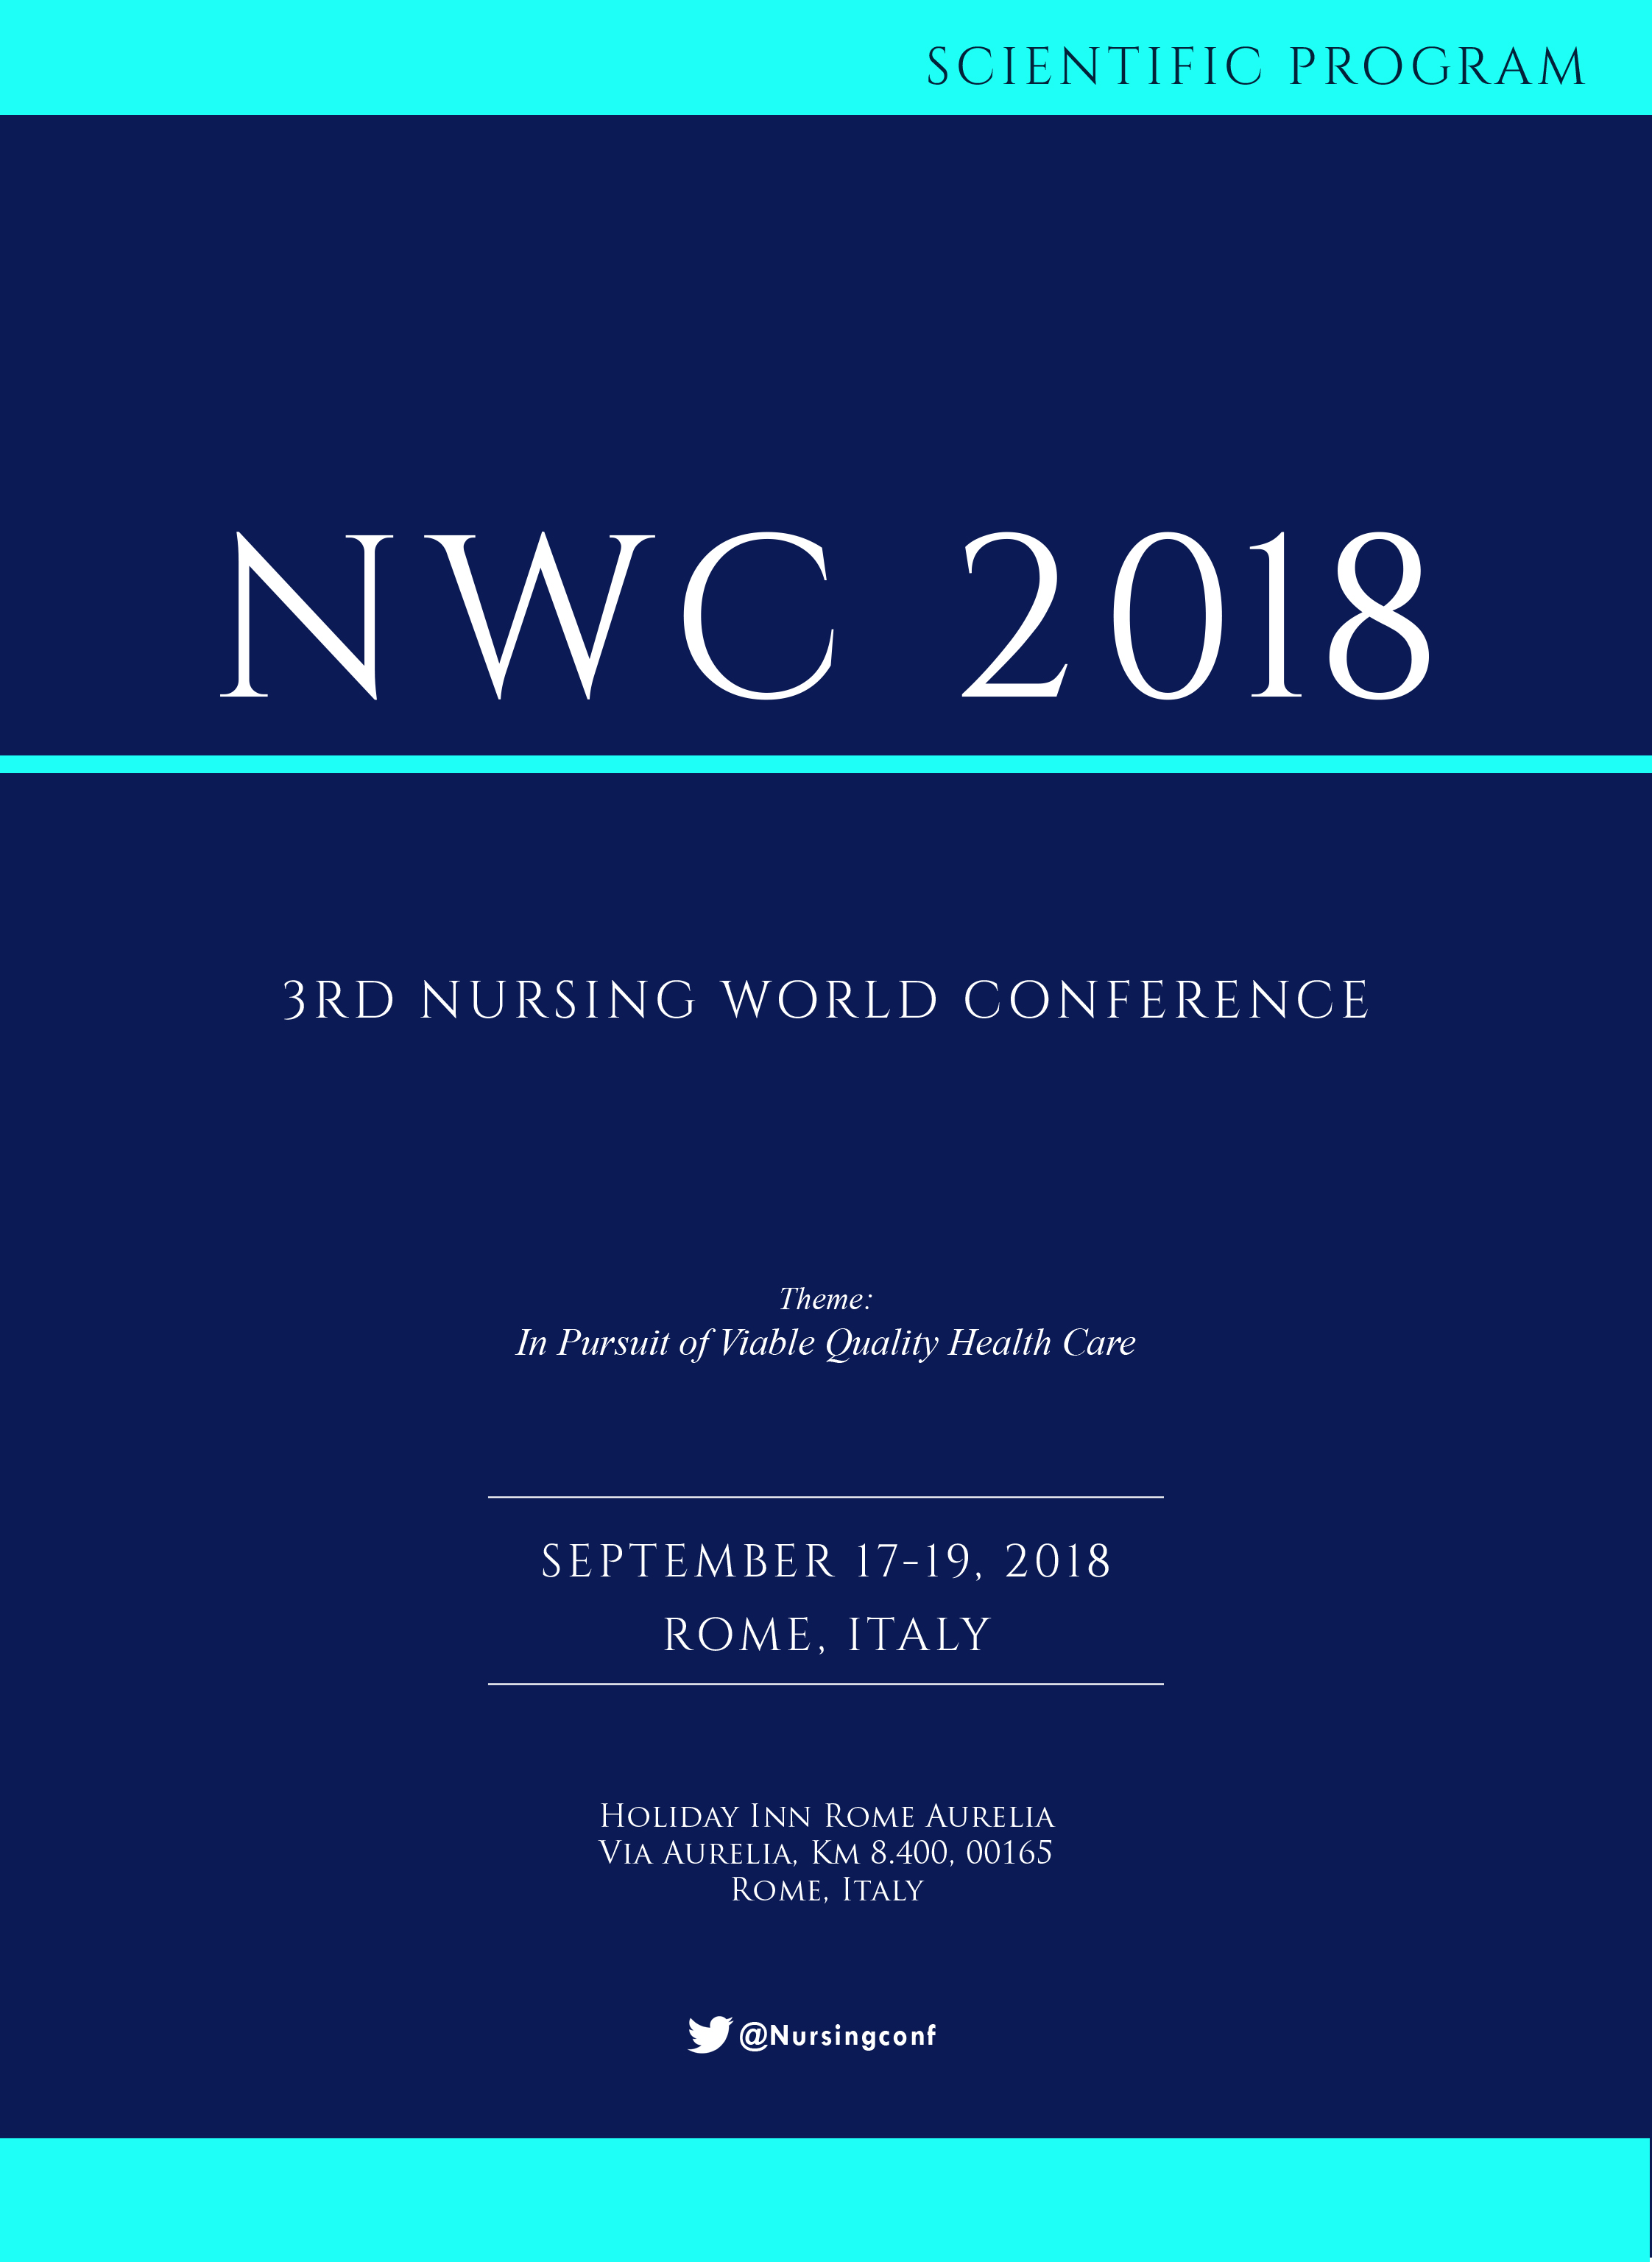 3rd Nursing World Conference Program